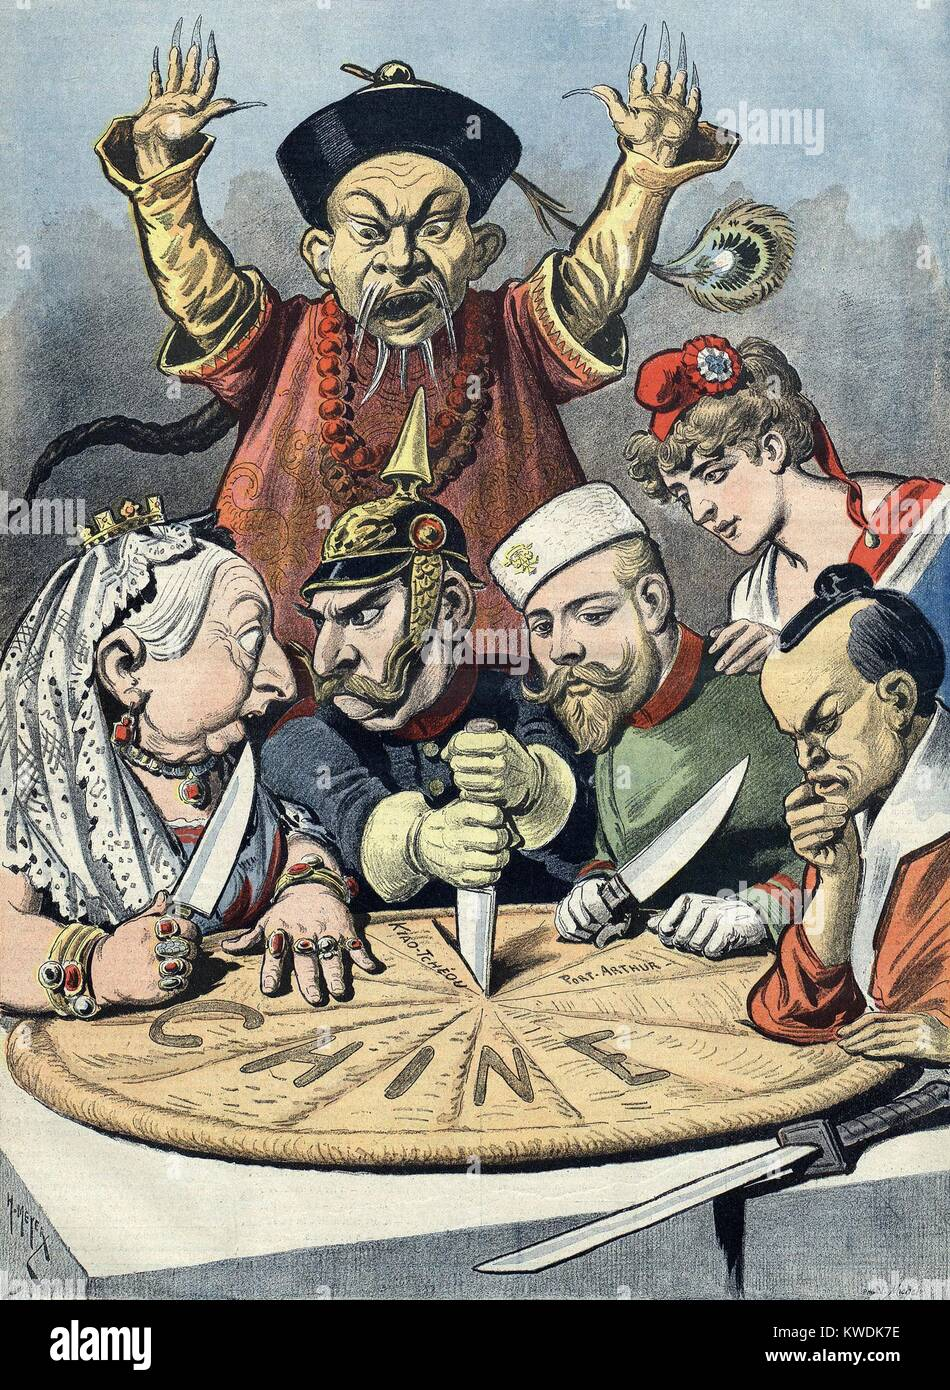 1898 French political cartoon shows Europeans carving up China. Behind them an agitated Mandarin is helpless to - Stock Image